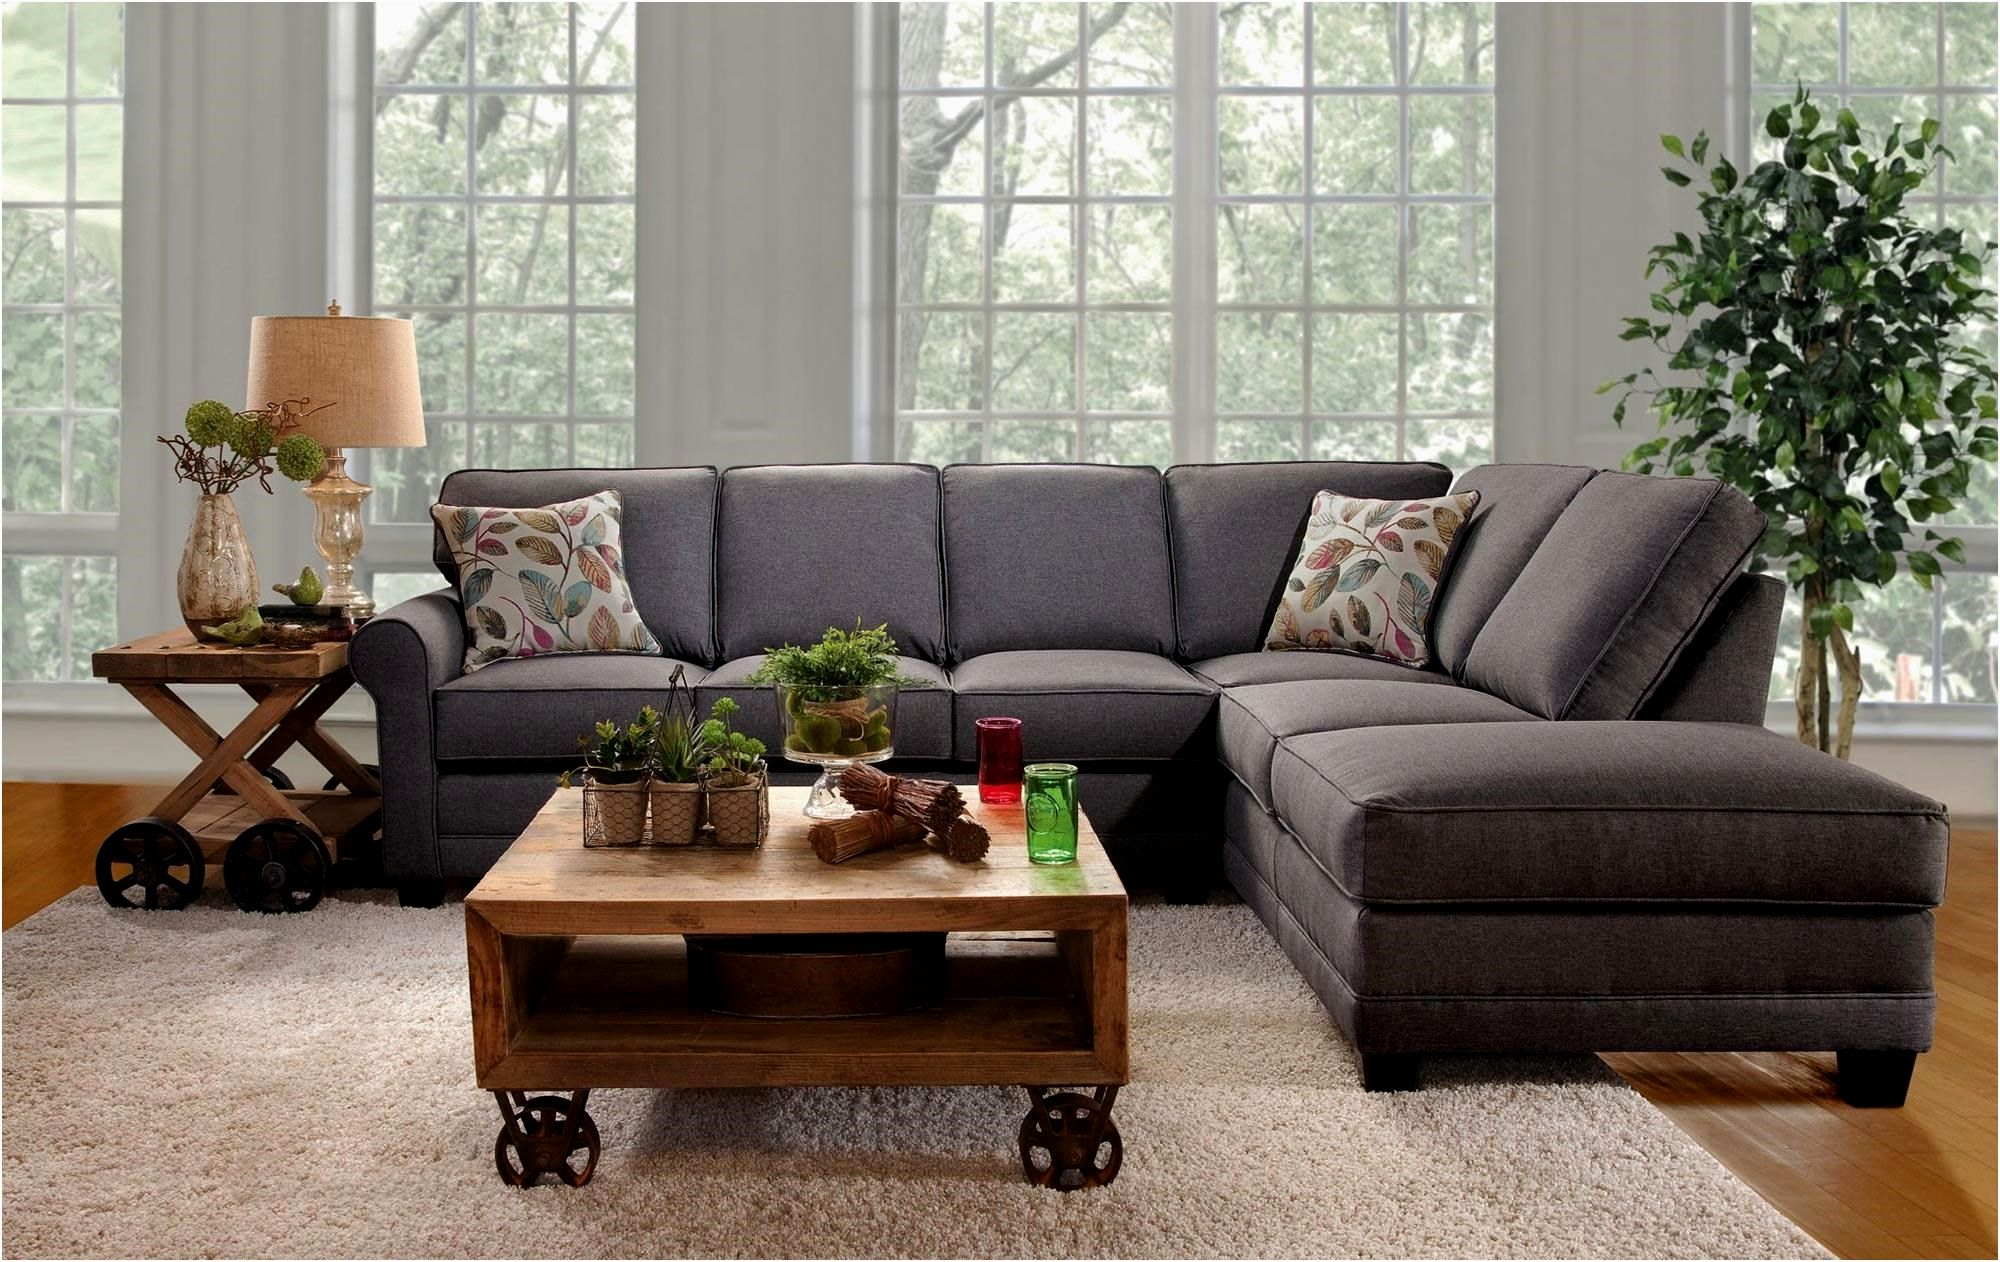 lovely serta upholstery sofa photograph-Stylish Serta Upholstery sofa Gallery